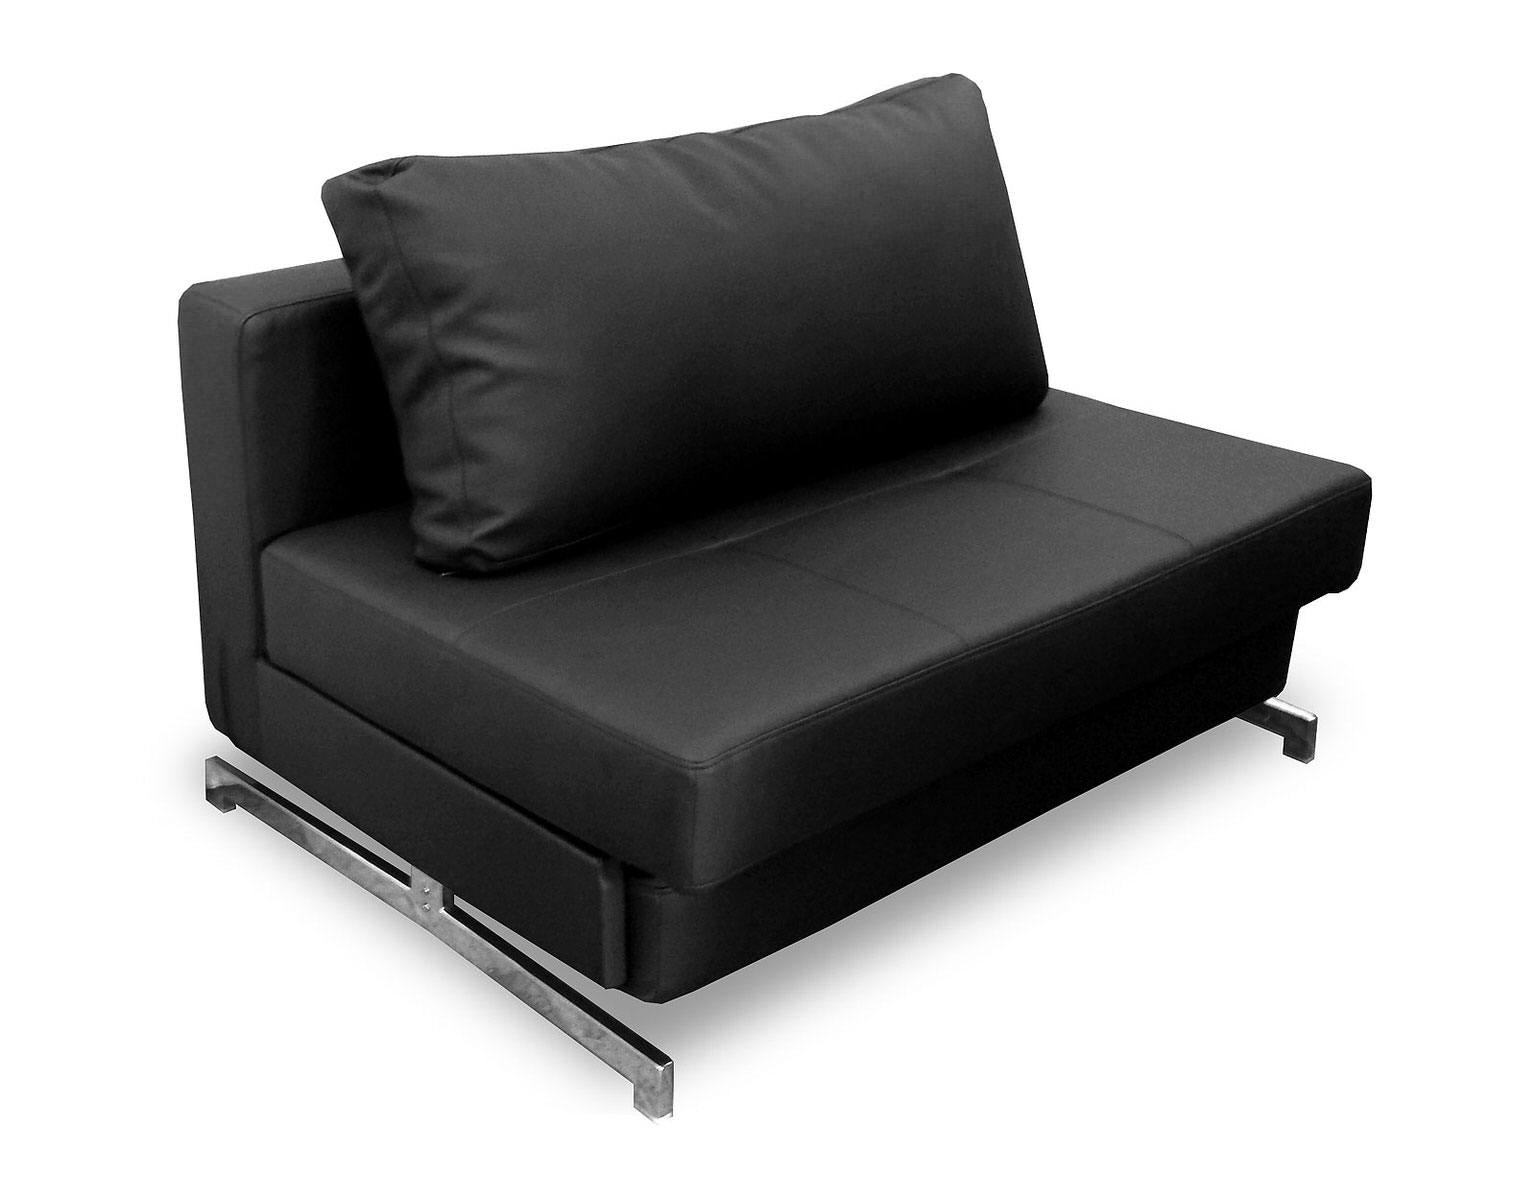 Modern Black Leather Textile Sofa Sleeper K43 1 By Ido